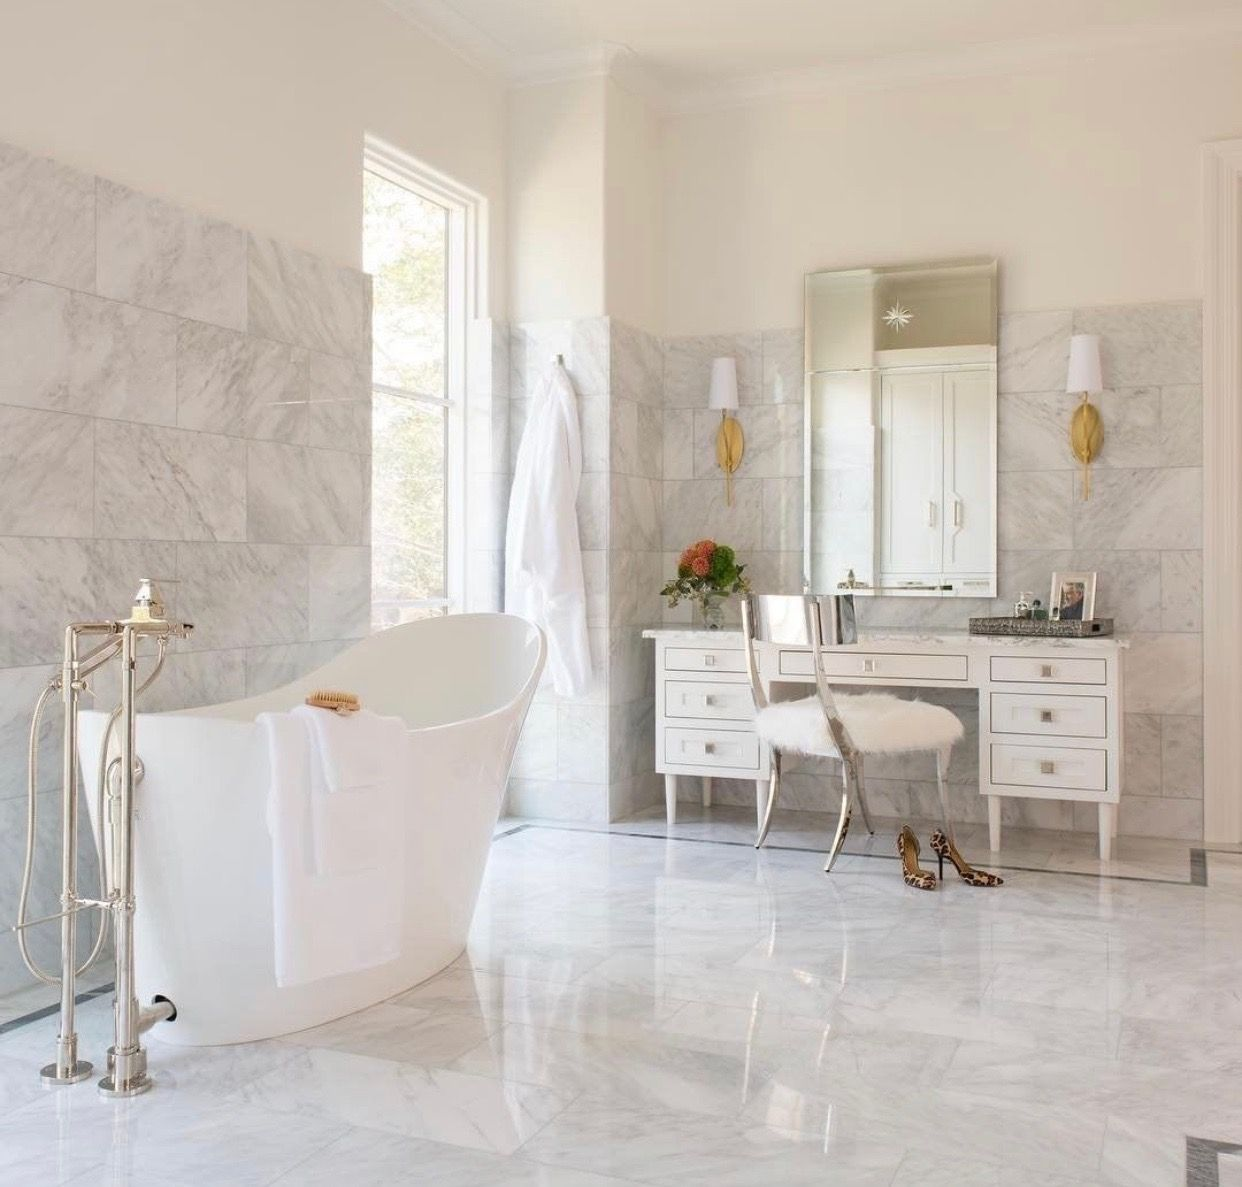 Pin by CeCe John on Future Home White vanity bathroom